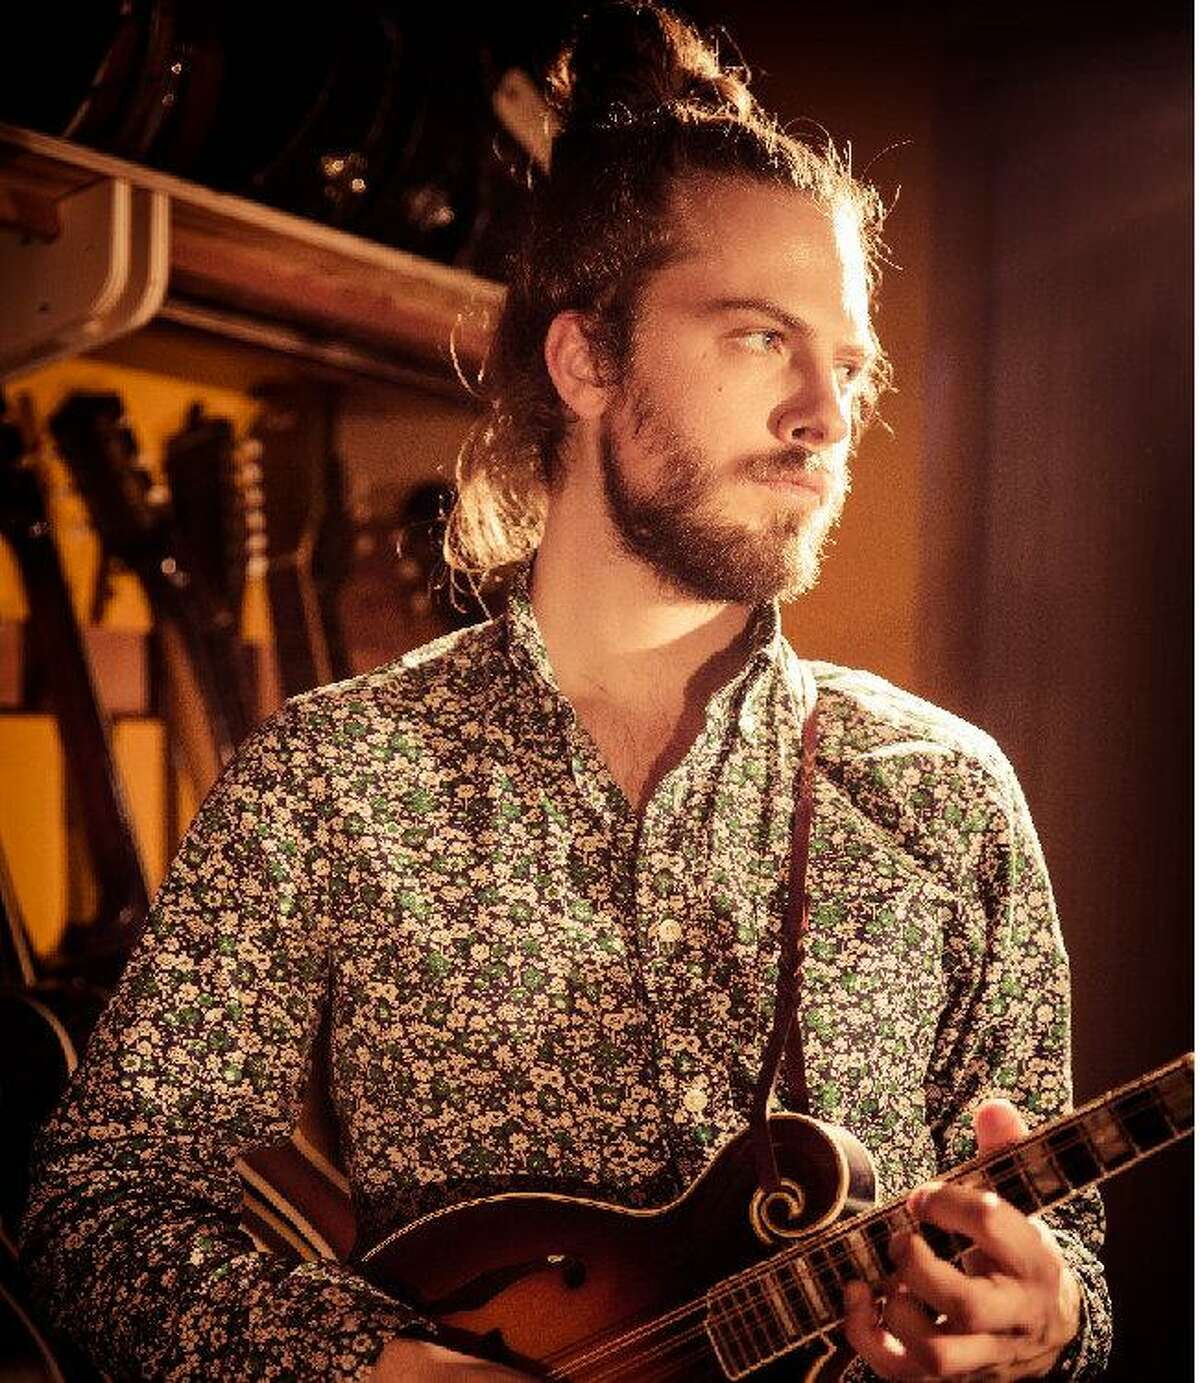 Noted mandolinist Jacob Jolliff - a star of the Yonder Mountain String Band - brings his own group to the Fairfield Theatre Company's StageOne on Friday, Jan. 5.